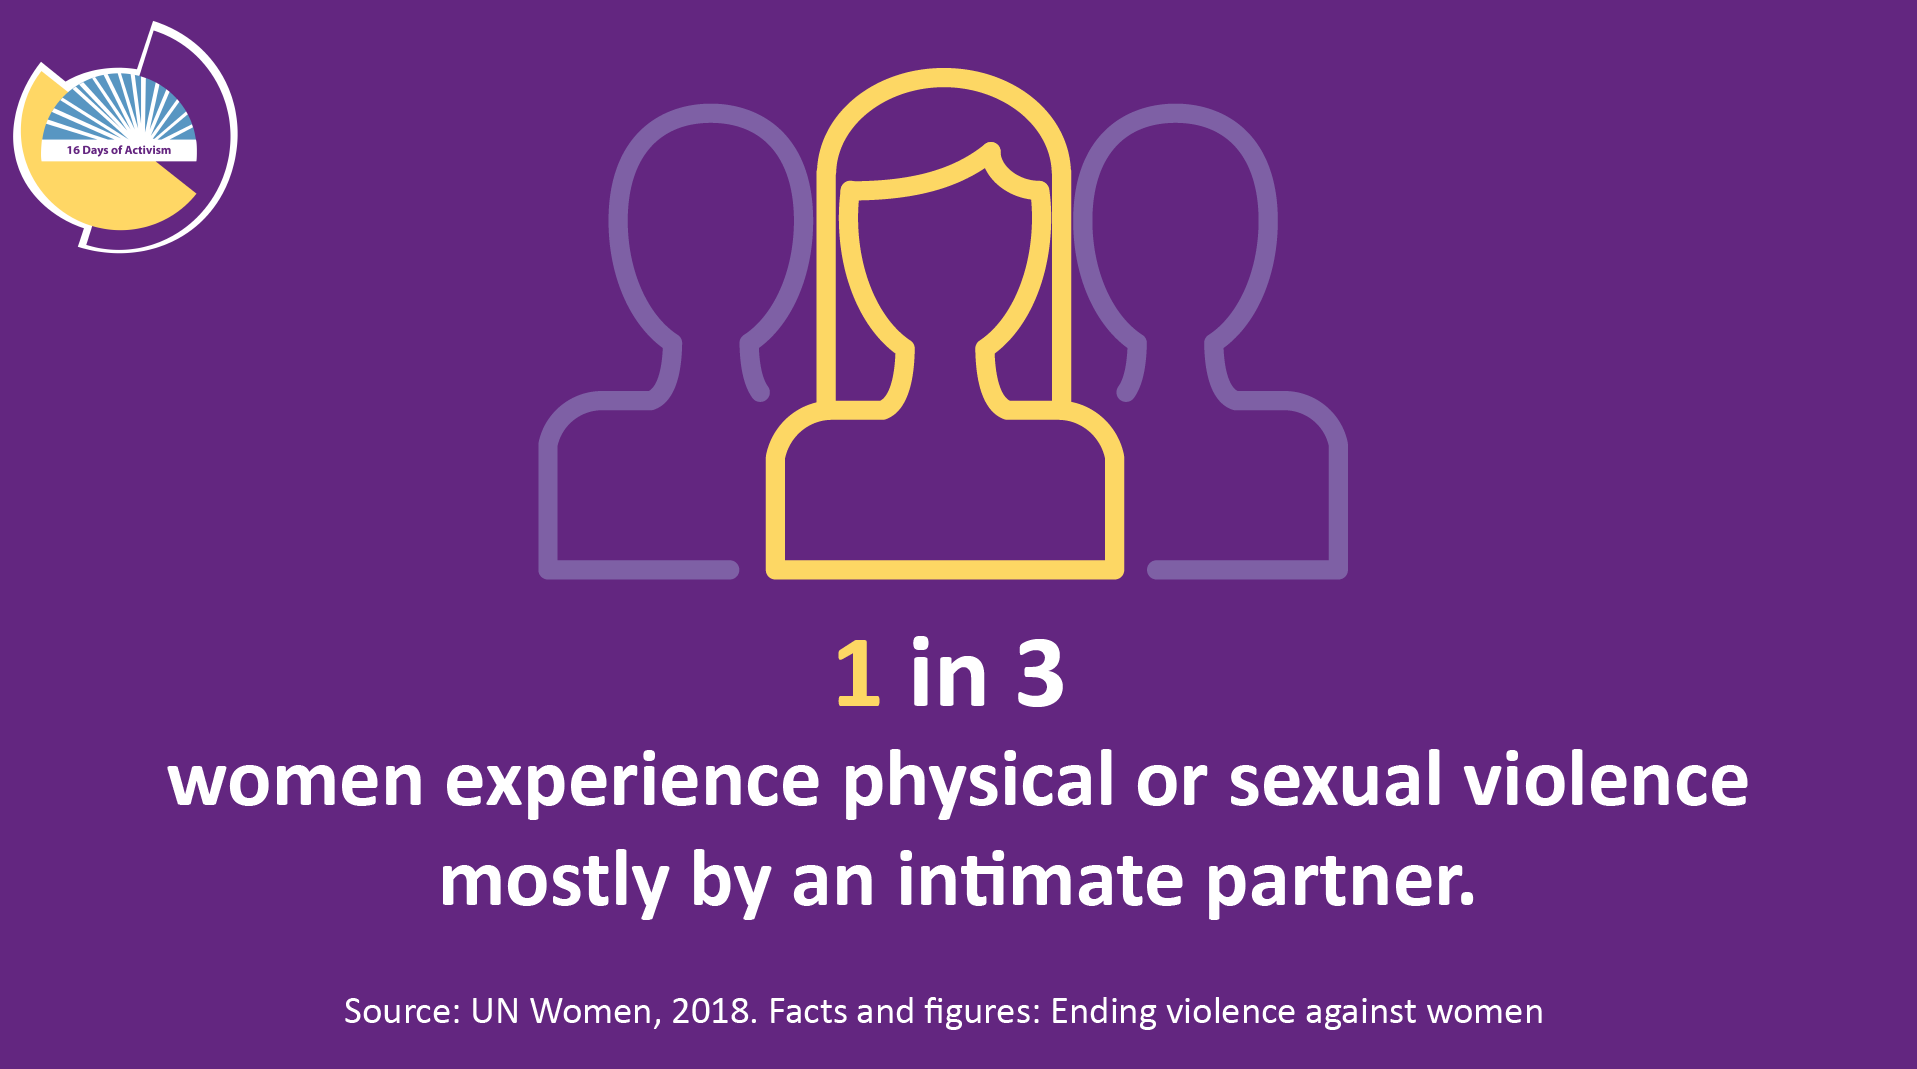 1 in 3 women experience physical or sexual violence mostly by an intimate partner